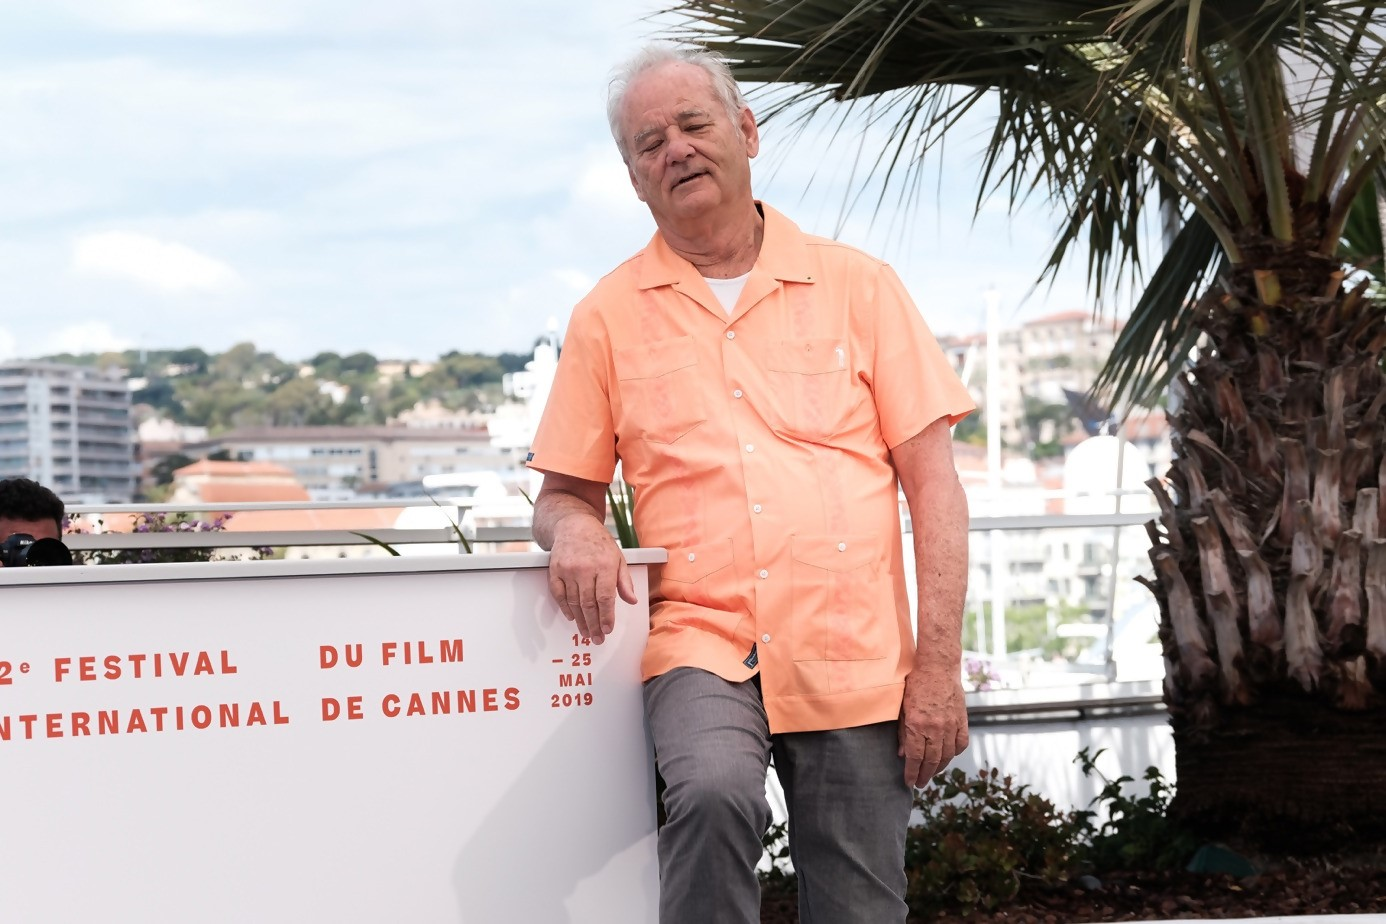 Same day : Bill Murray always entertaining crowds during photo call in Cannes Film Festival